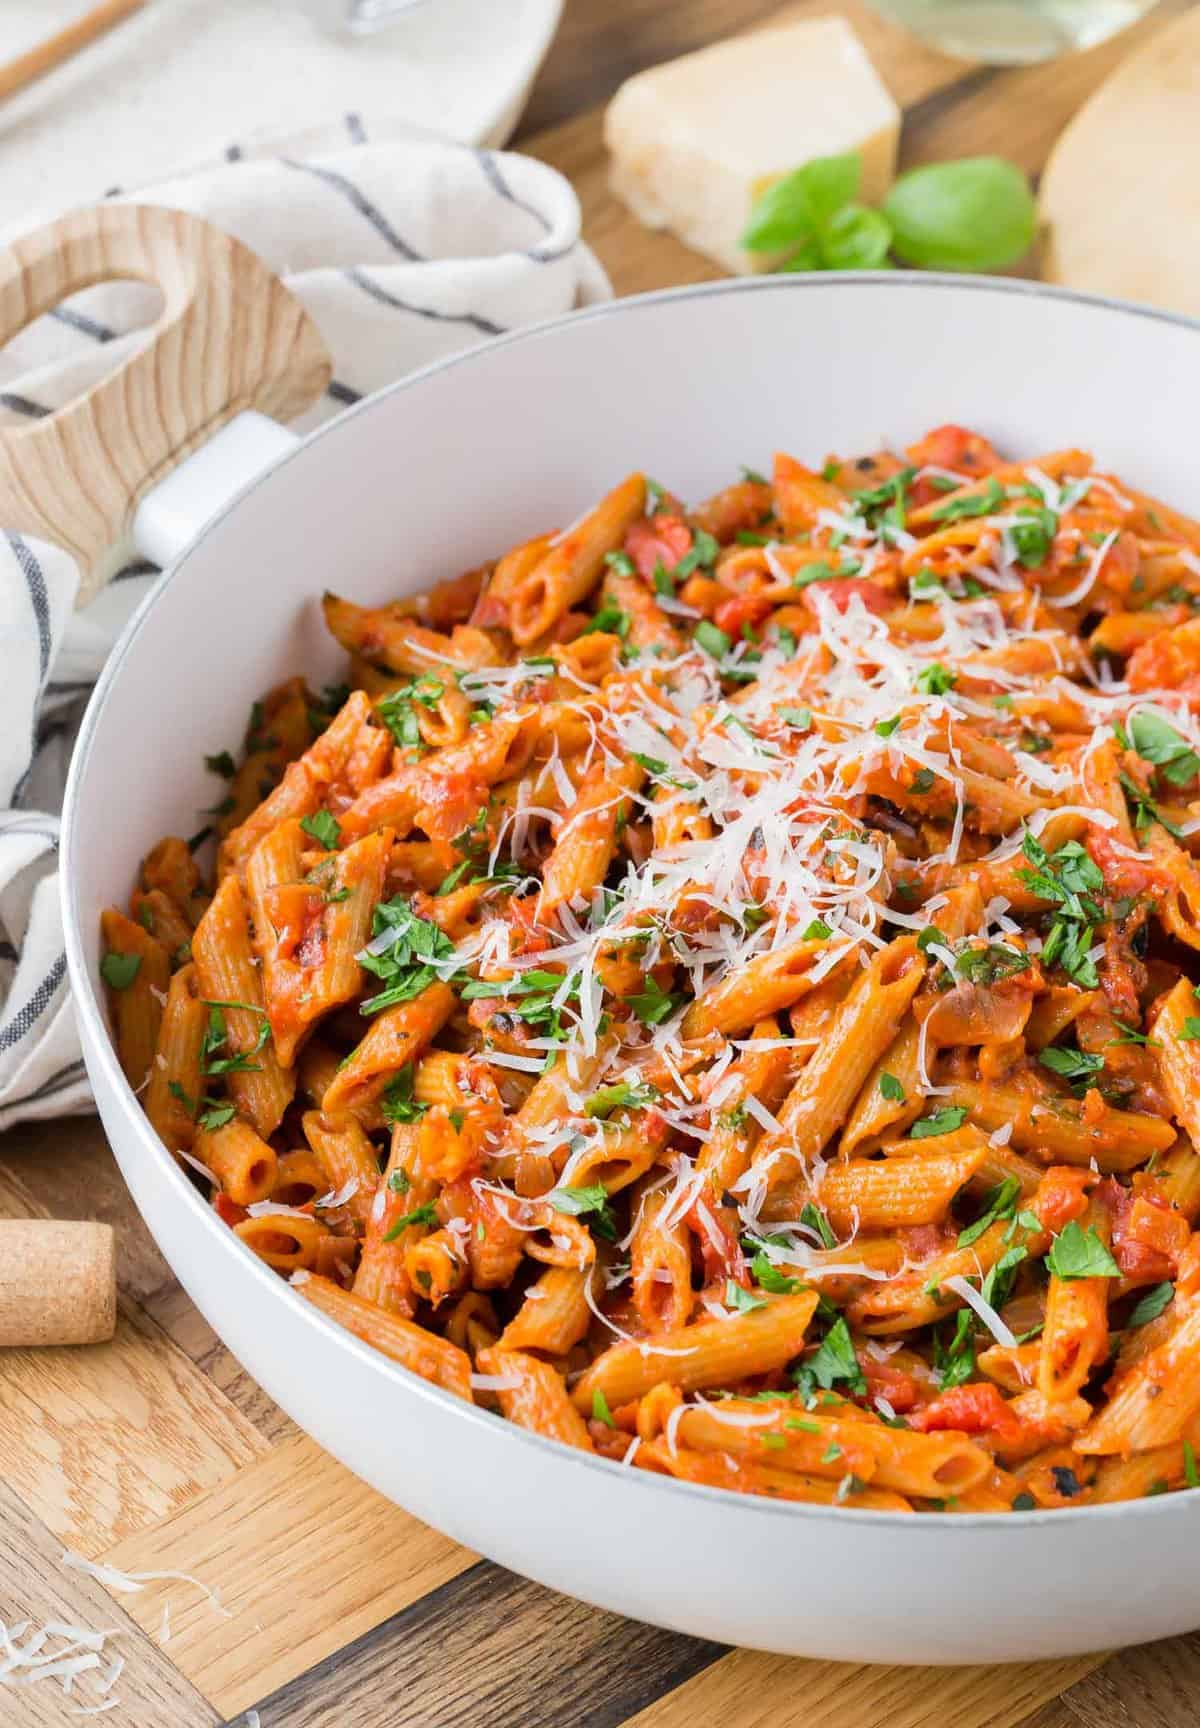 Pasta with tomato sauce in a white pan.